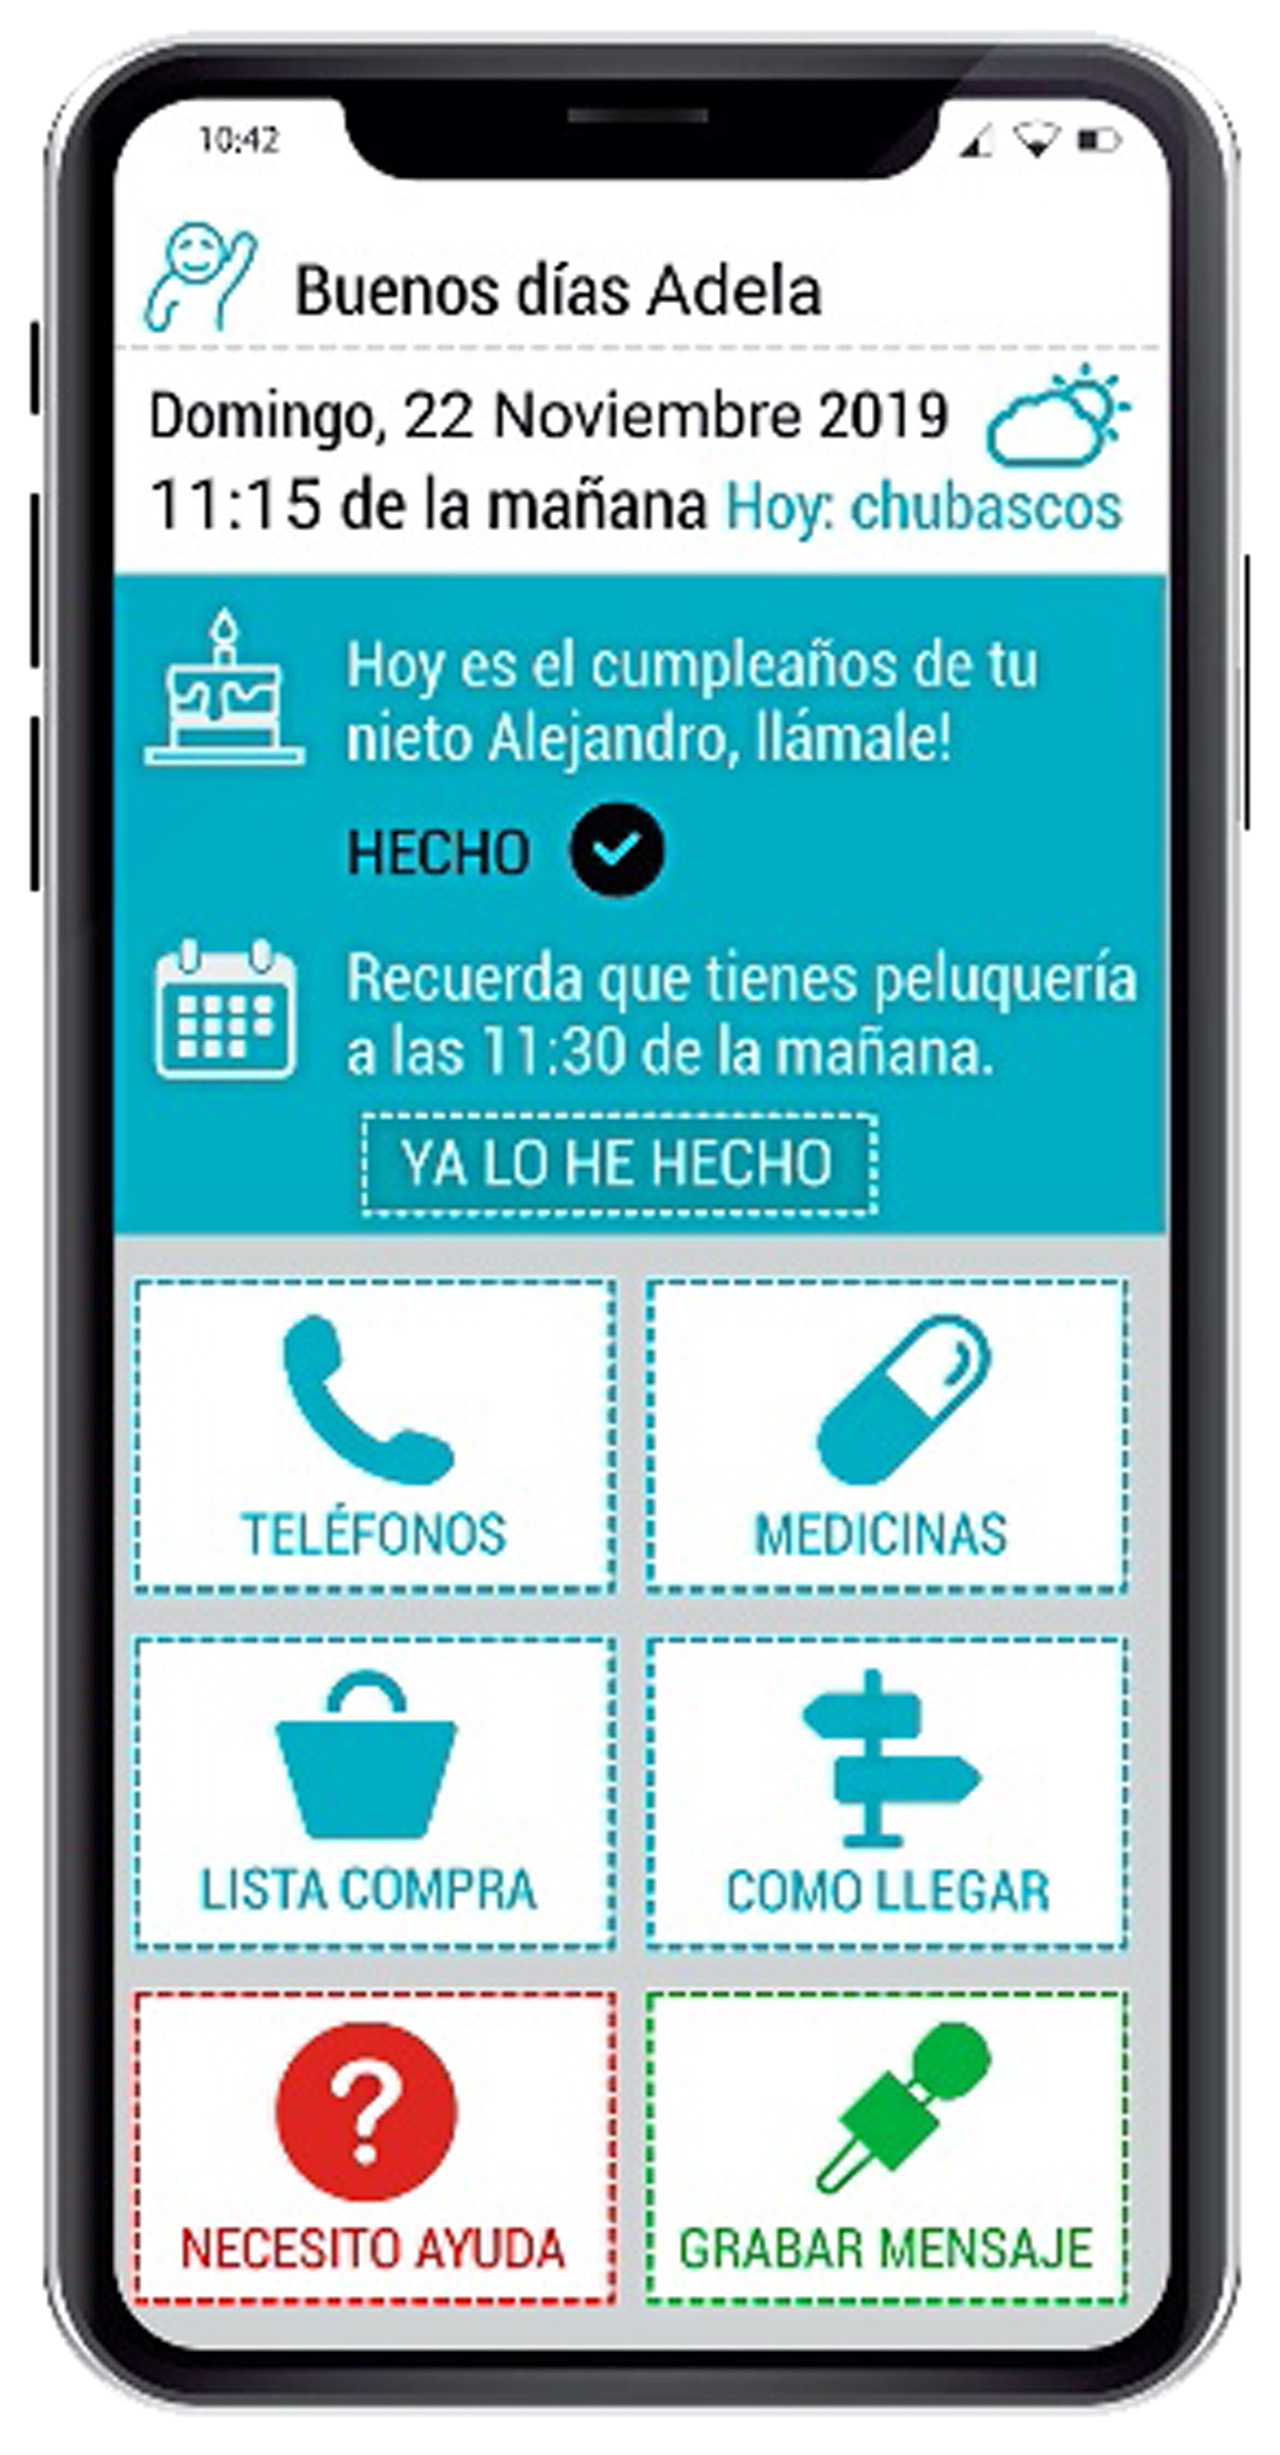 diabetes de champix nhs elecciones